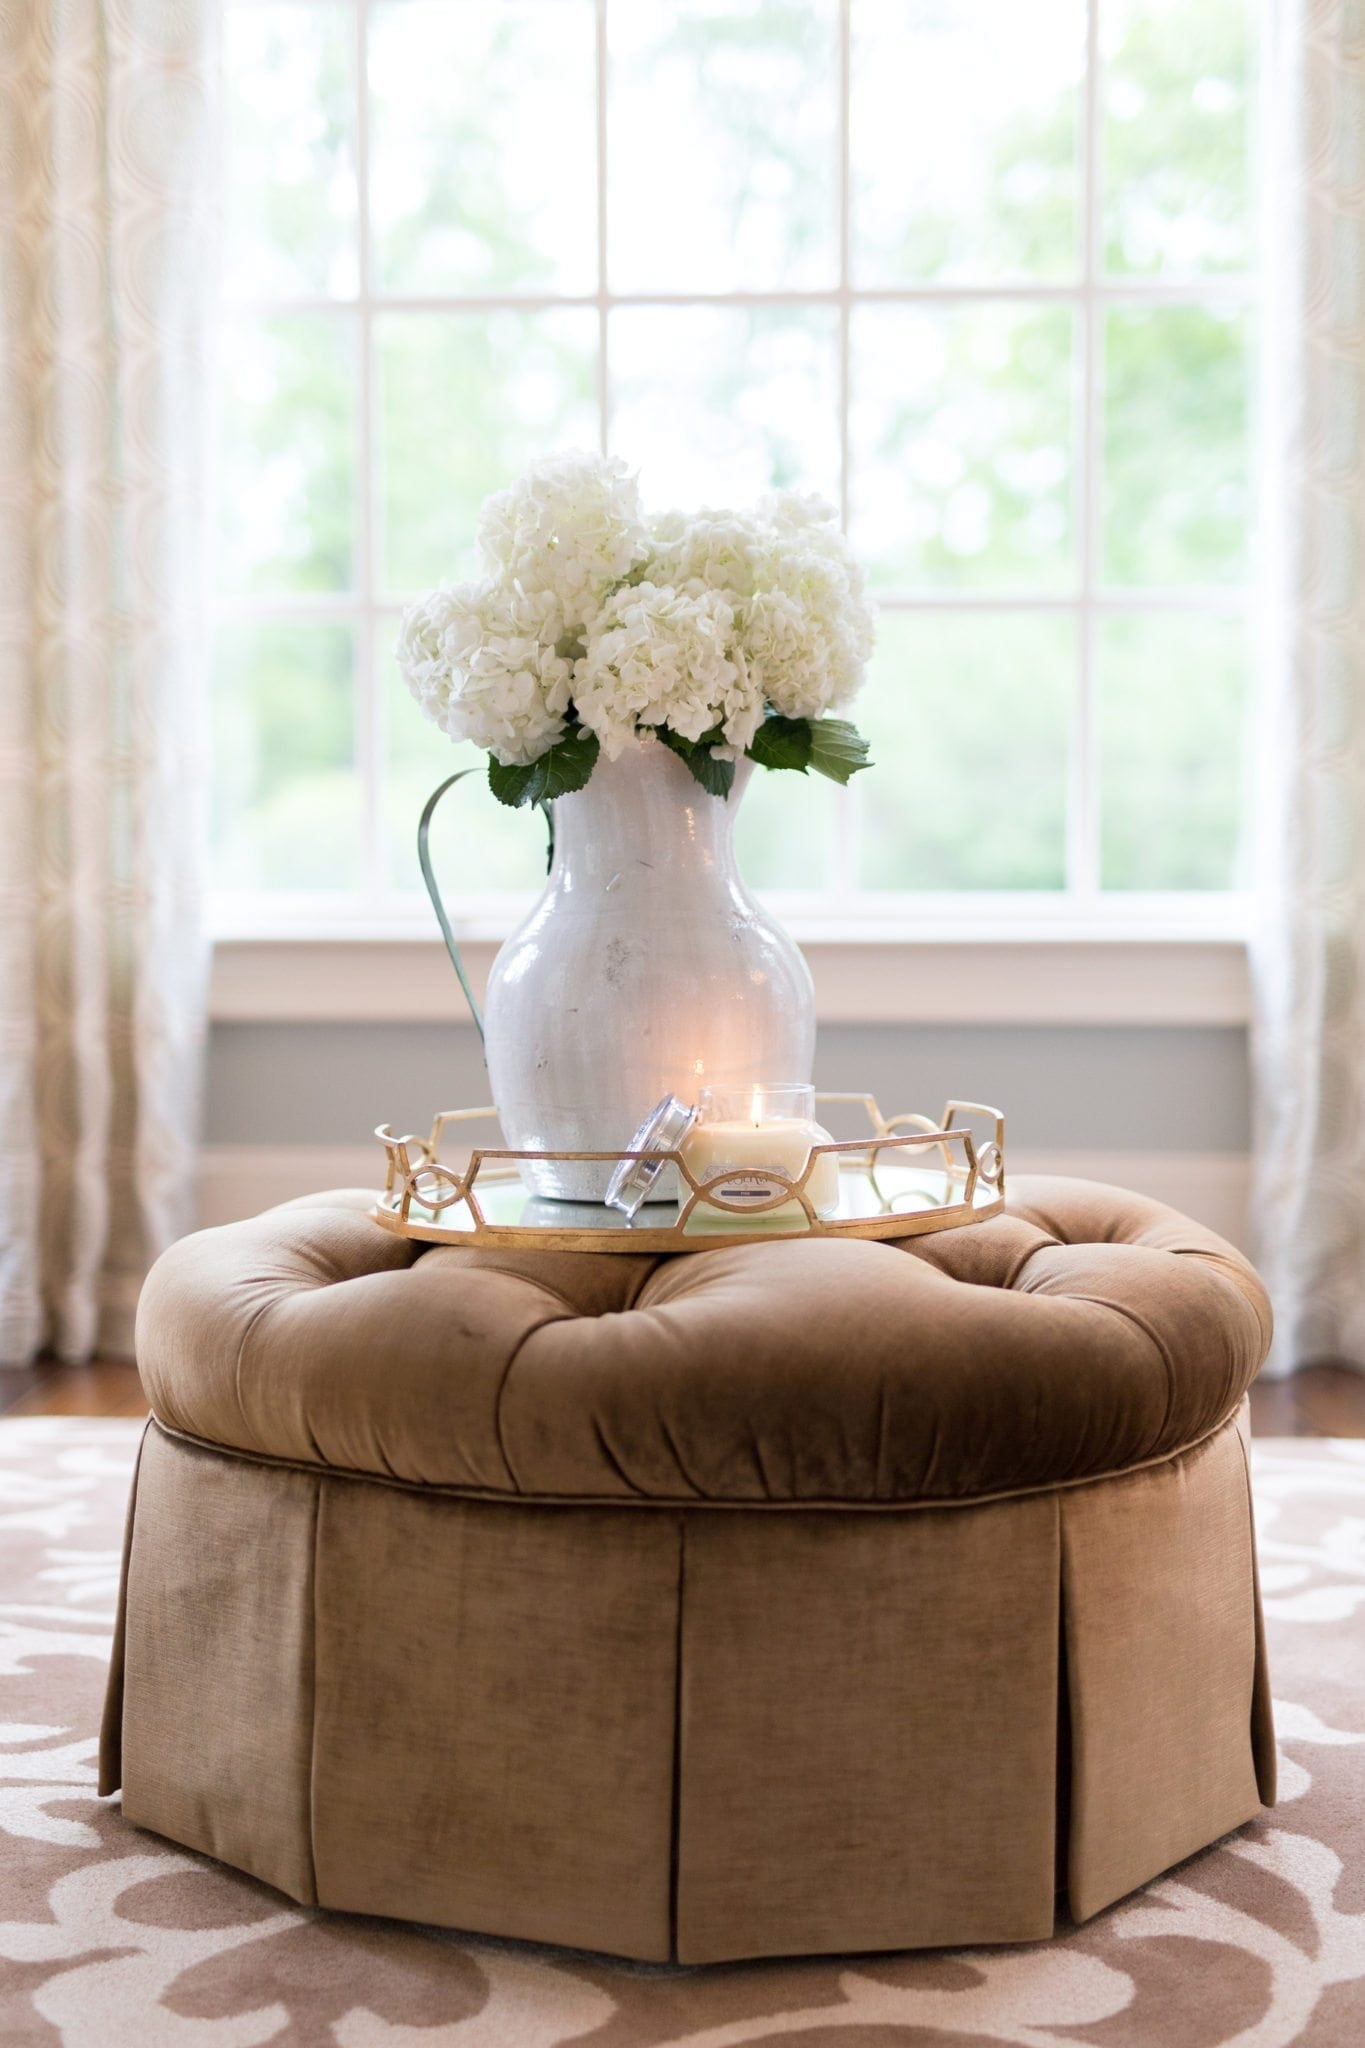 How to keep hydrangeas fresh in a vase longer. Three easy ways to keep your hydrangeas from wilting. Keep them living and looking better longer!